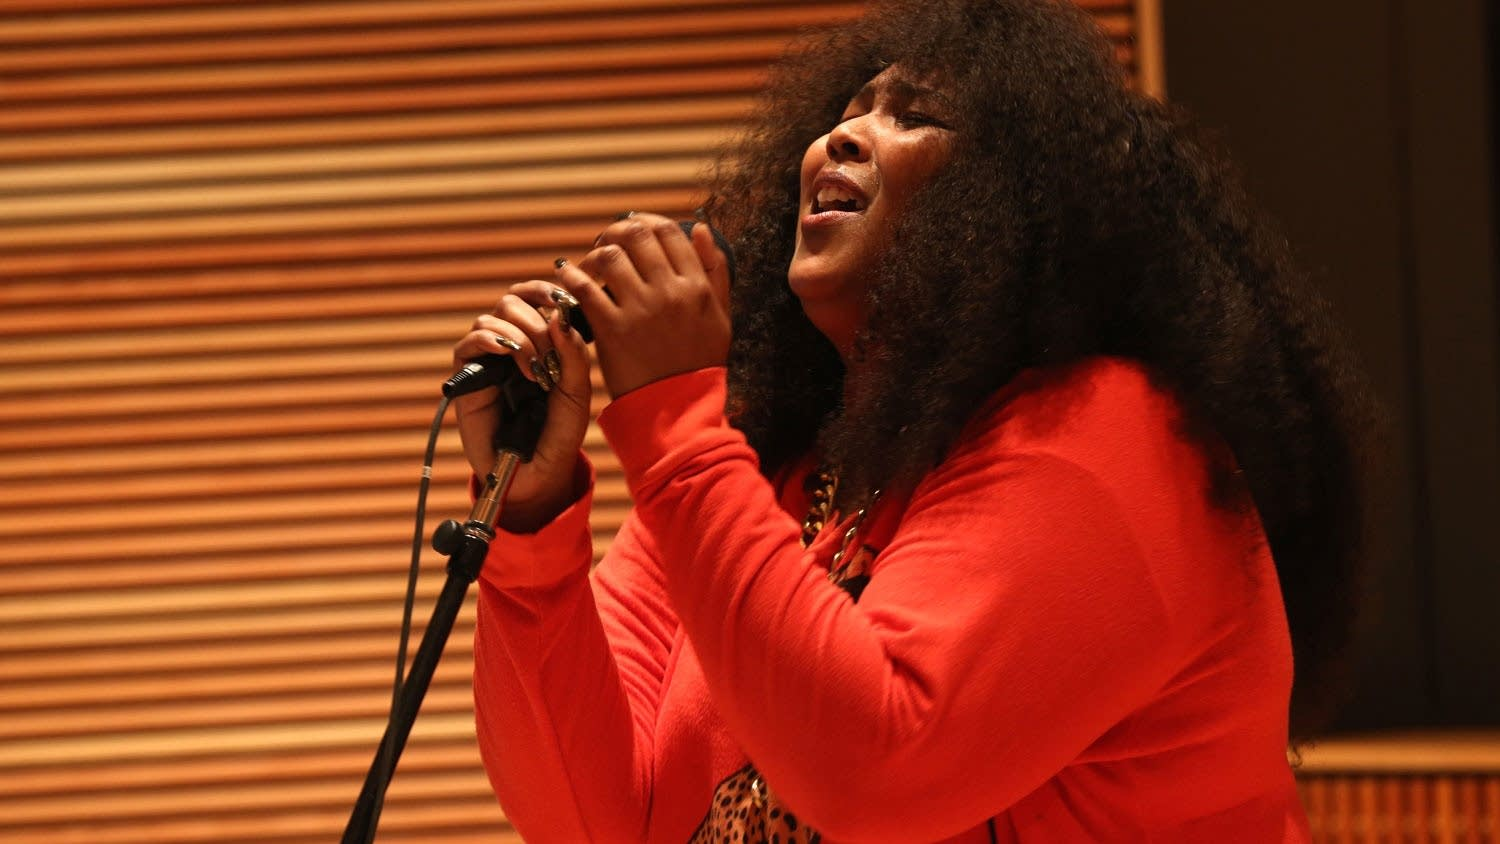 Lizzo performs in The Current studio